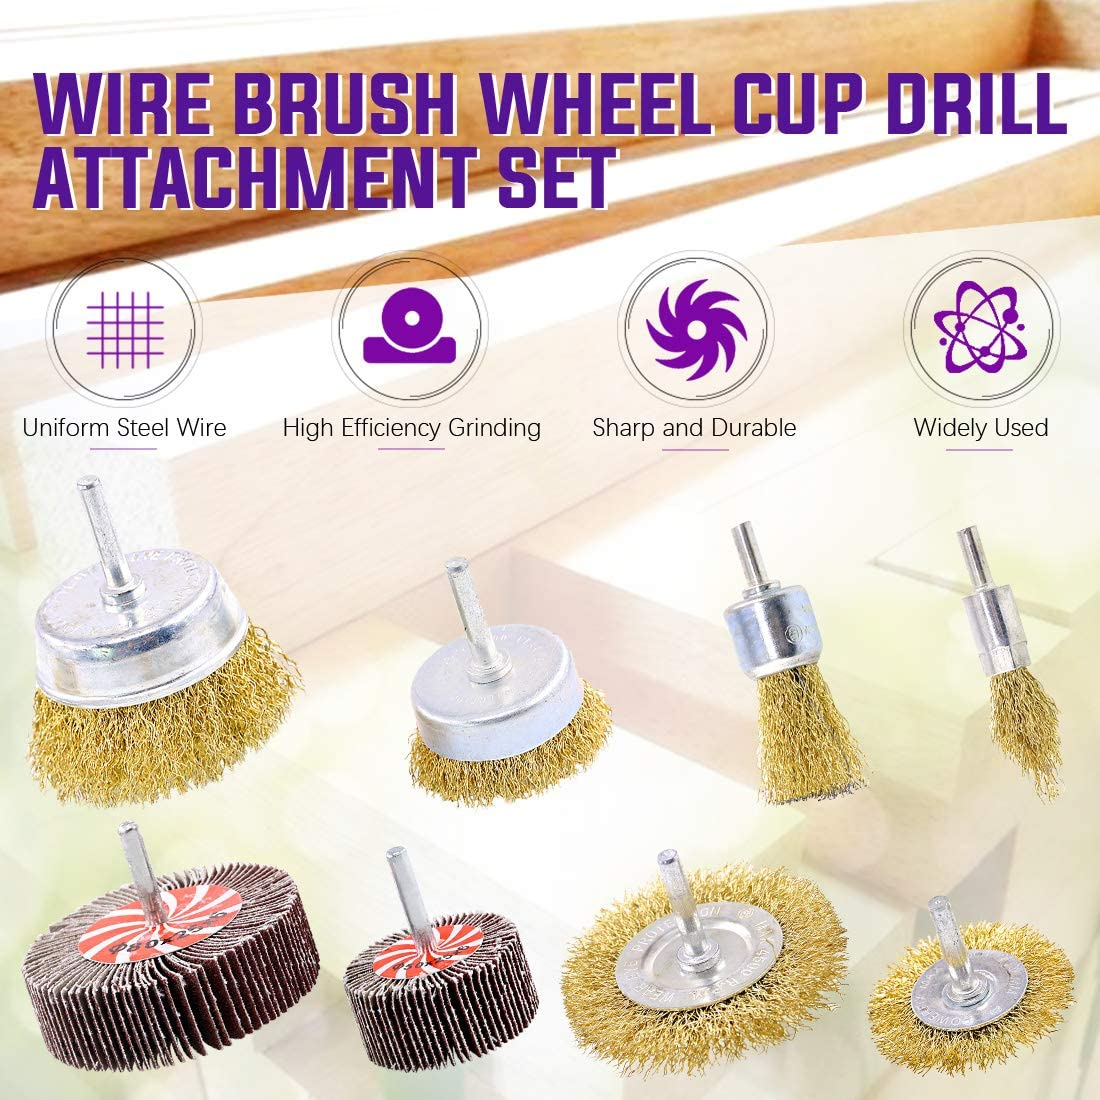 Reduced Wire Breakage Coated Wire Drill Brush Set Perfect for Removal of Rust//Corrosion//Paint Swpeet 8Pcs Brass Coated Wire Brush Wheel /& Cup Brush Set and Abrasive Flap Wheel With 1//4-Inch Shank